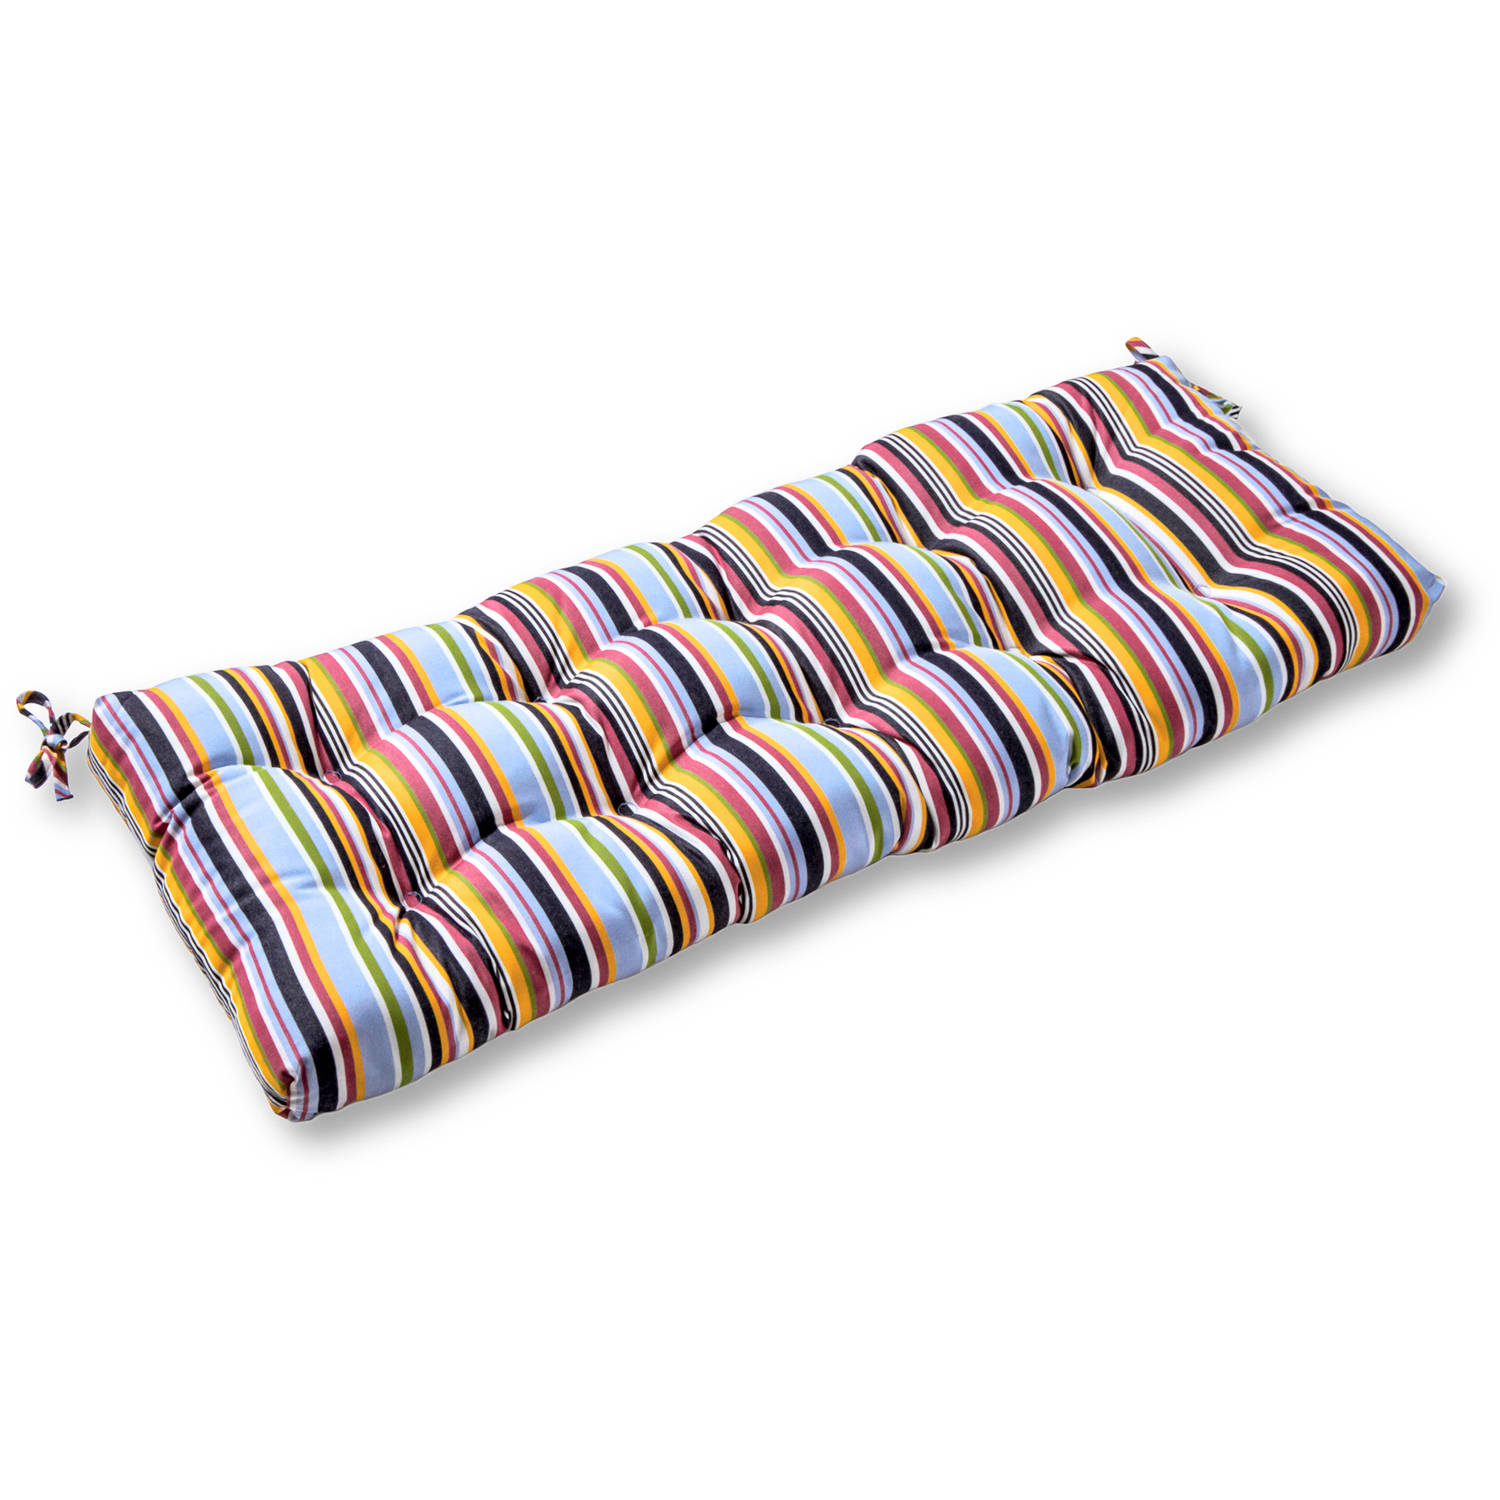 "Greendale Home Fashions 46"" Outdoor Swing/Bench Cushion, Sunbrella Fabric, Malibu Stripe"